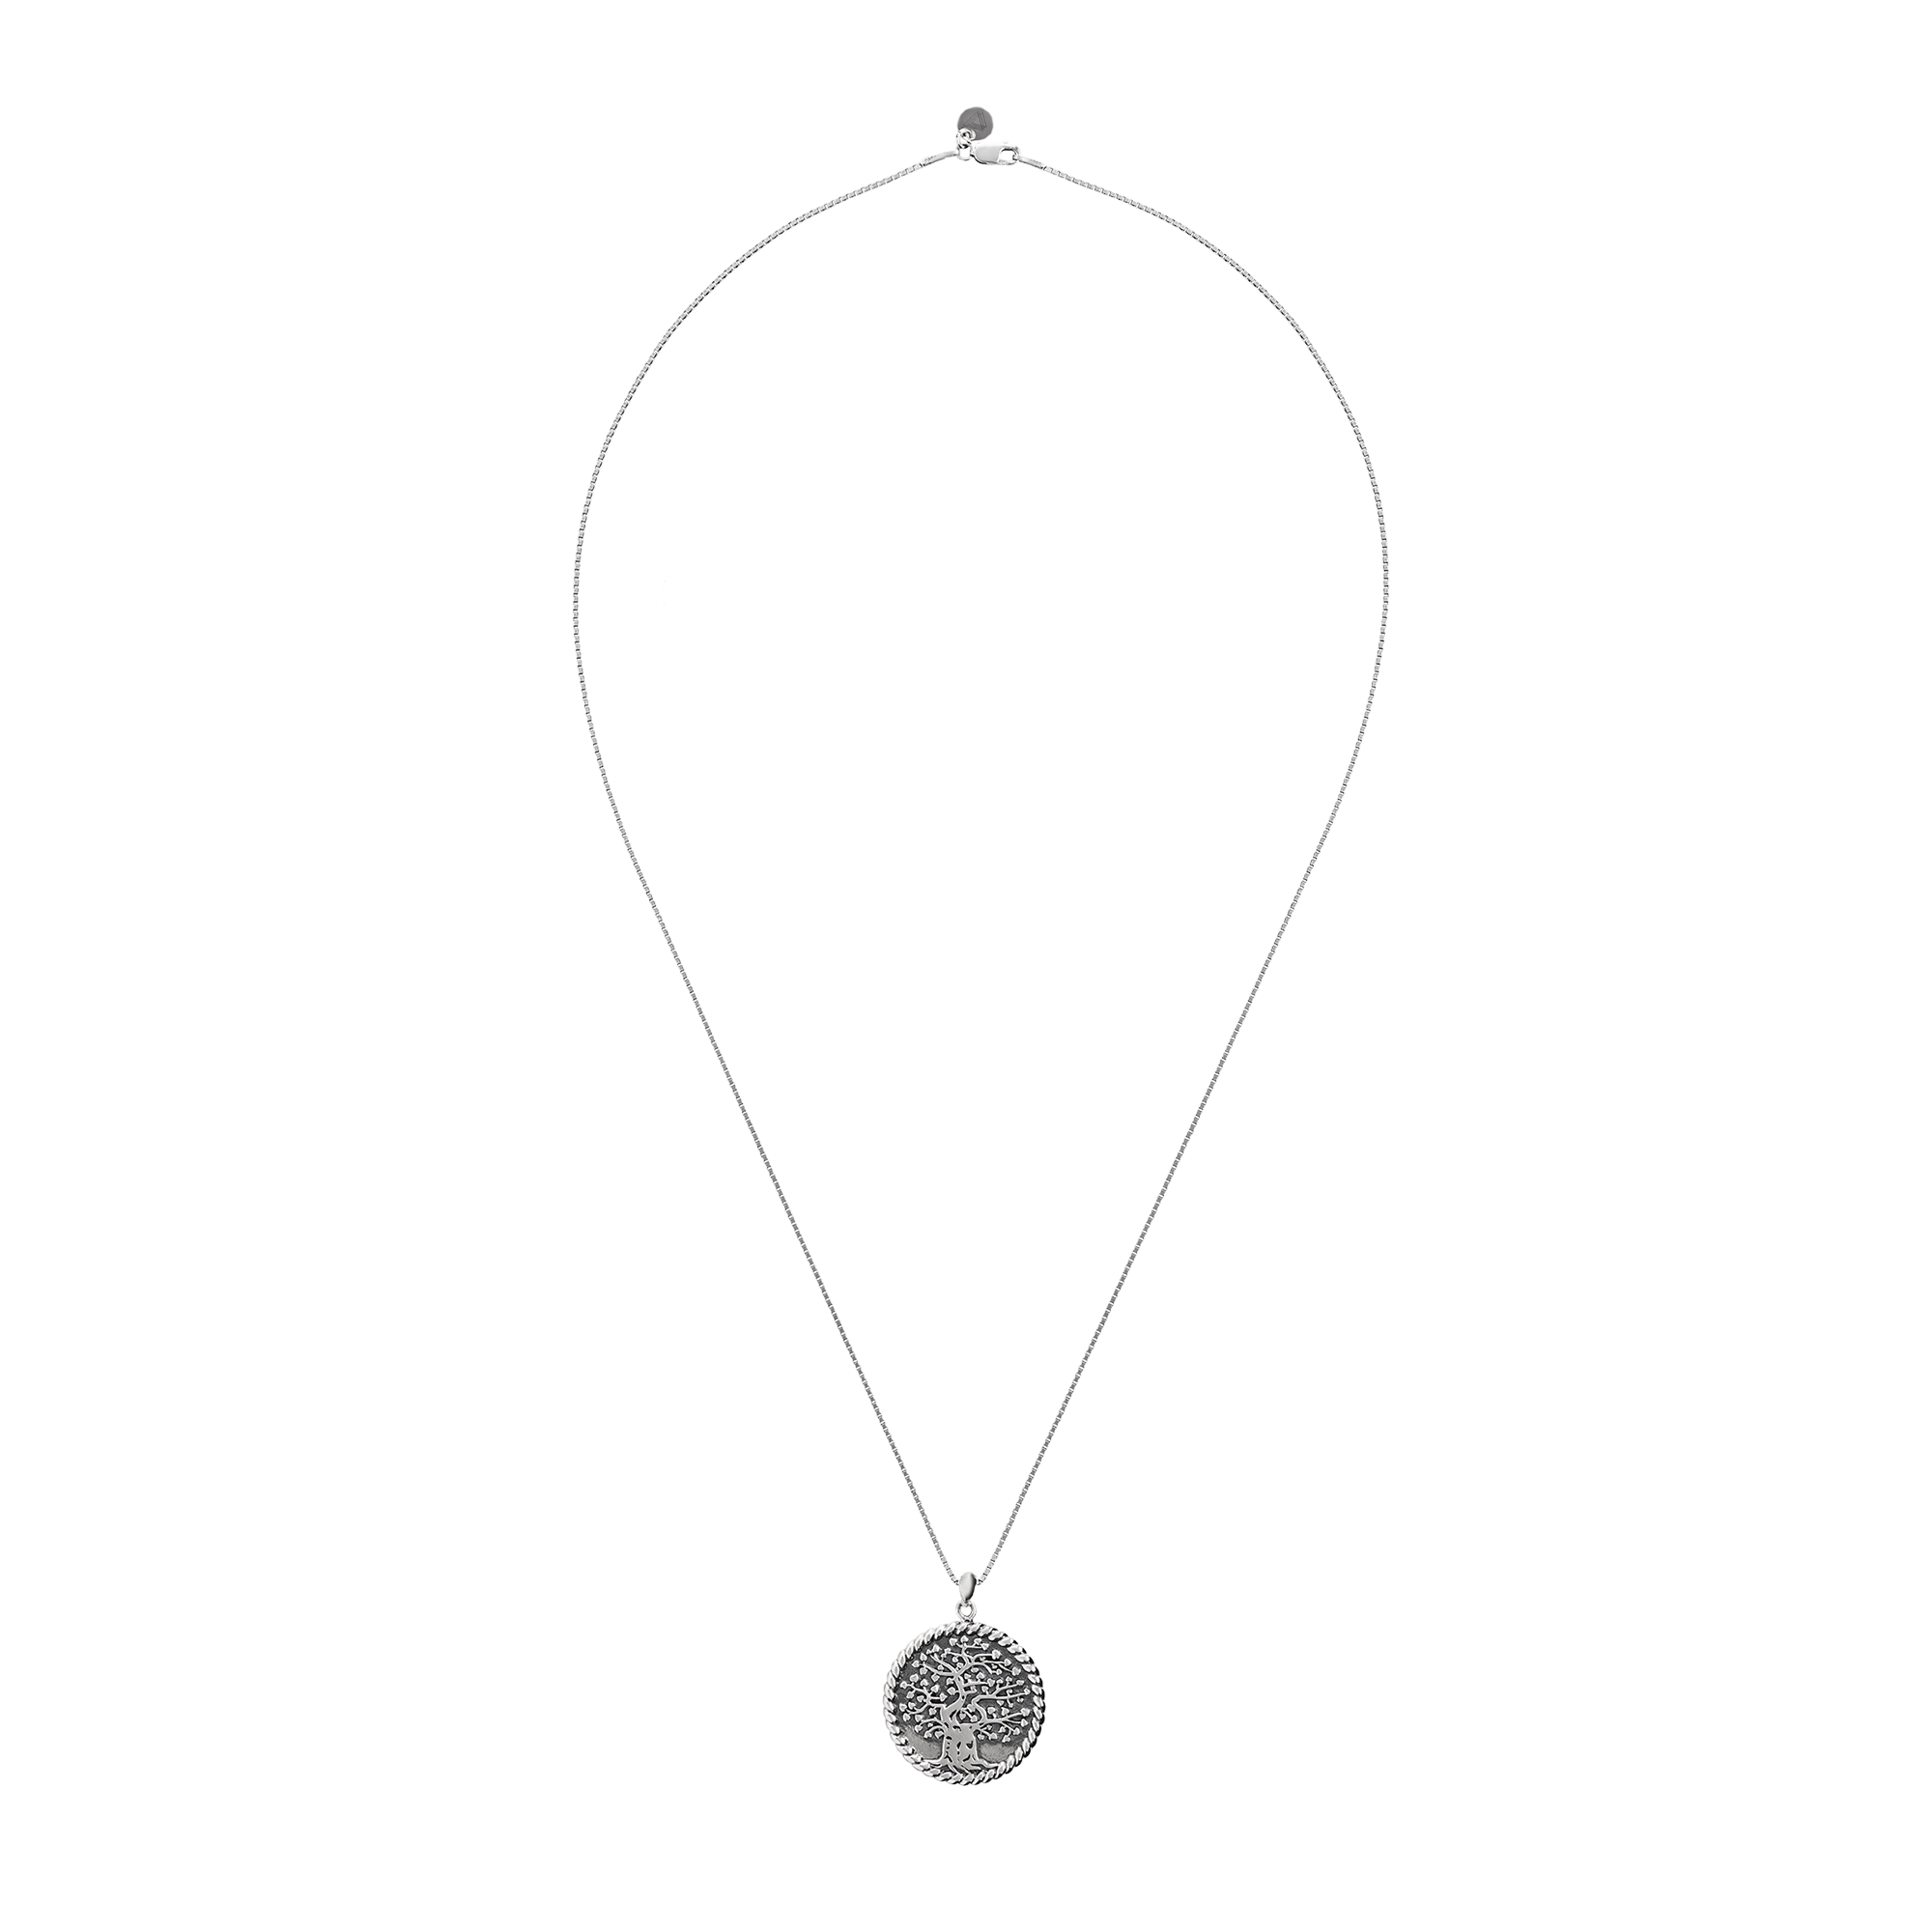 silver Necklace product image